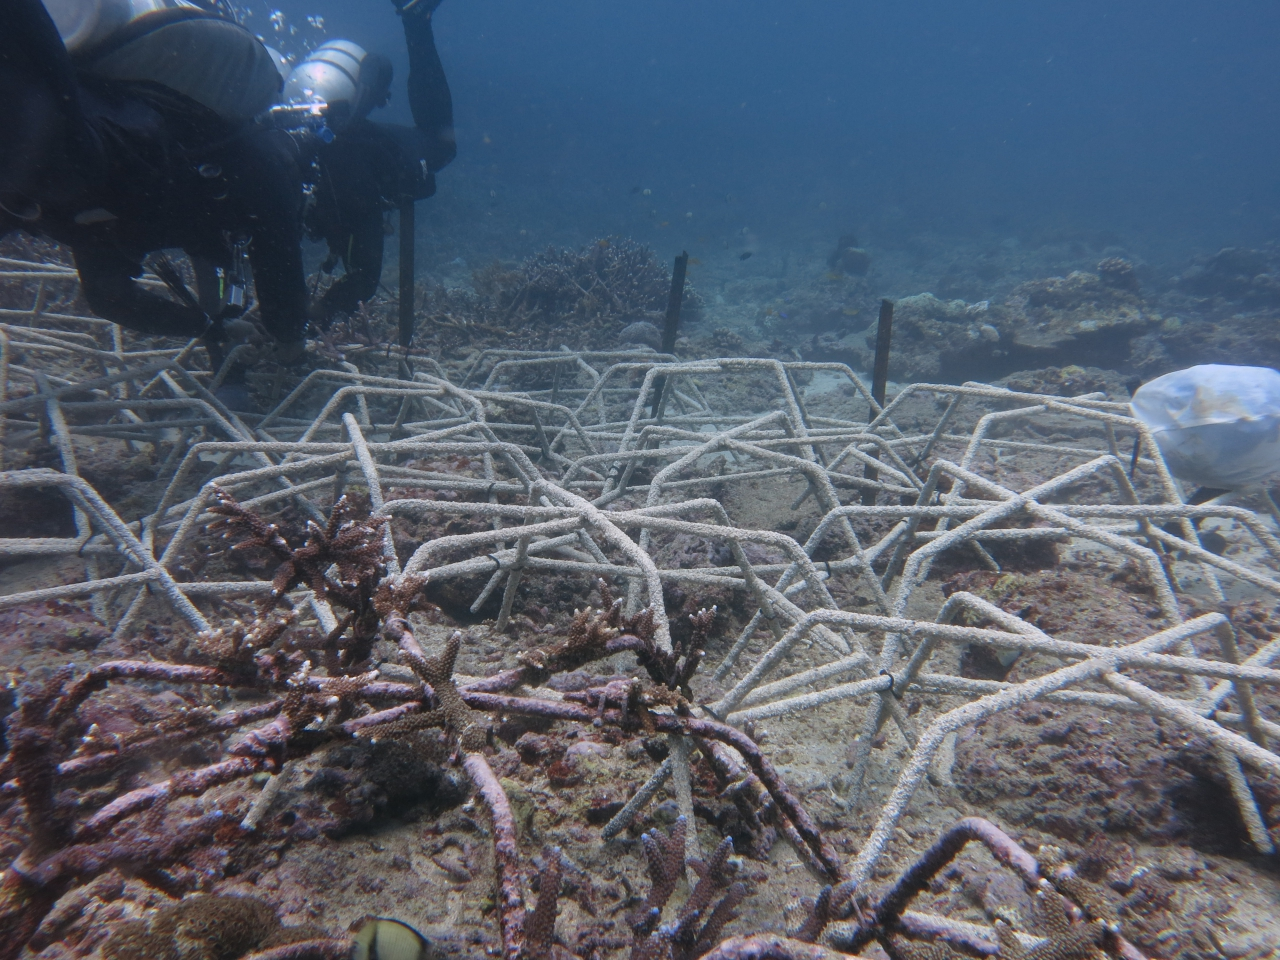 Supporting Coral Regeneration with the Coral Spider Method